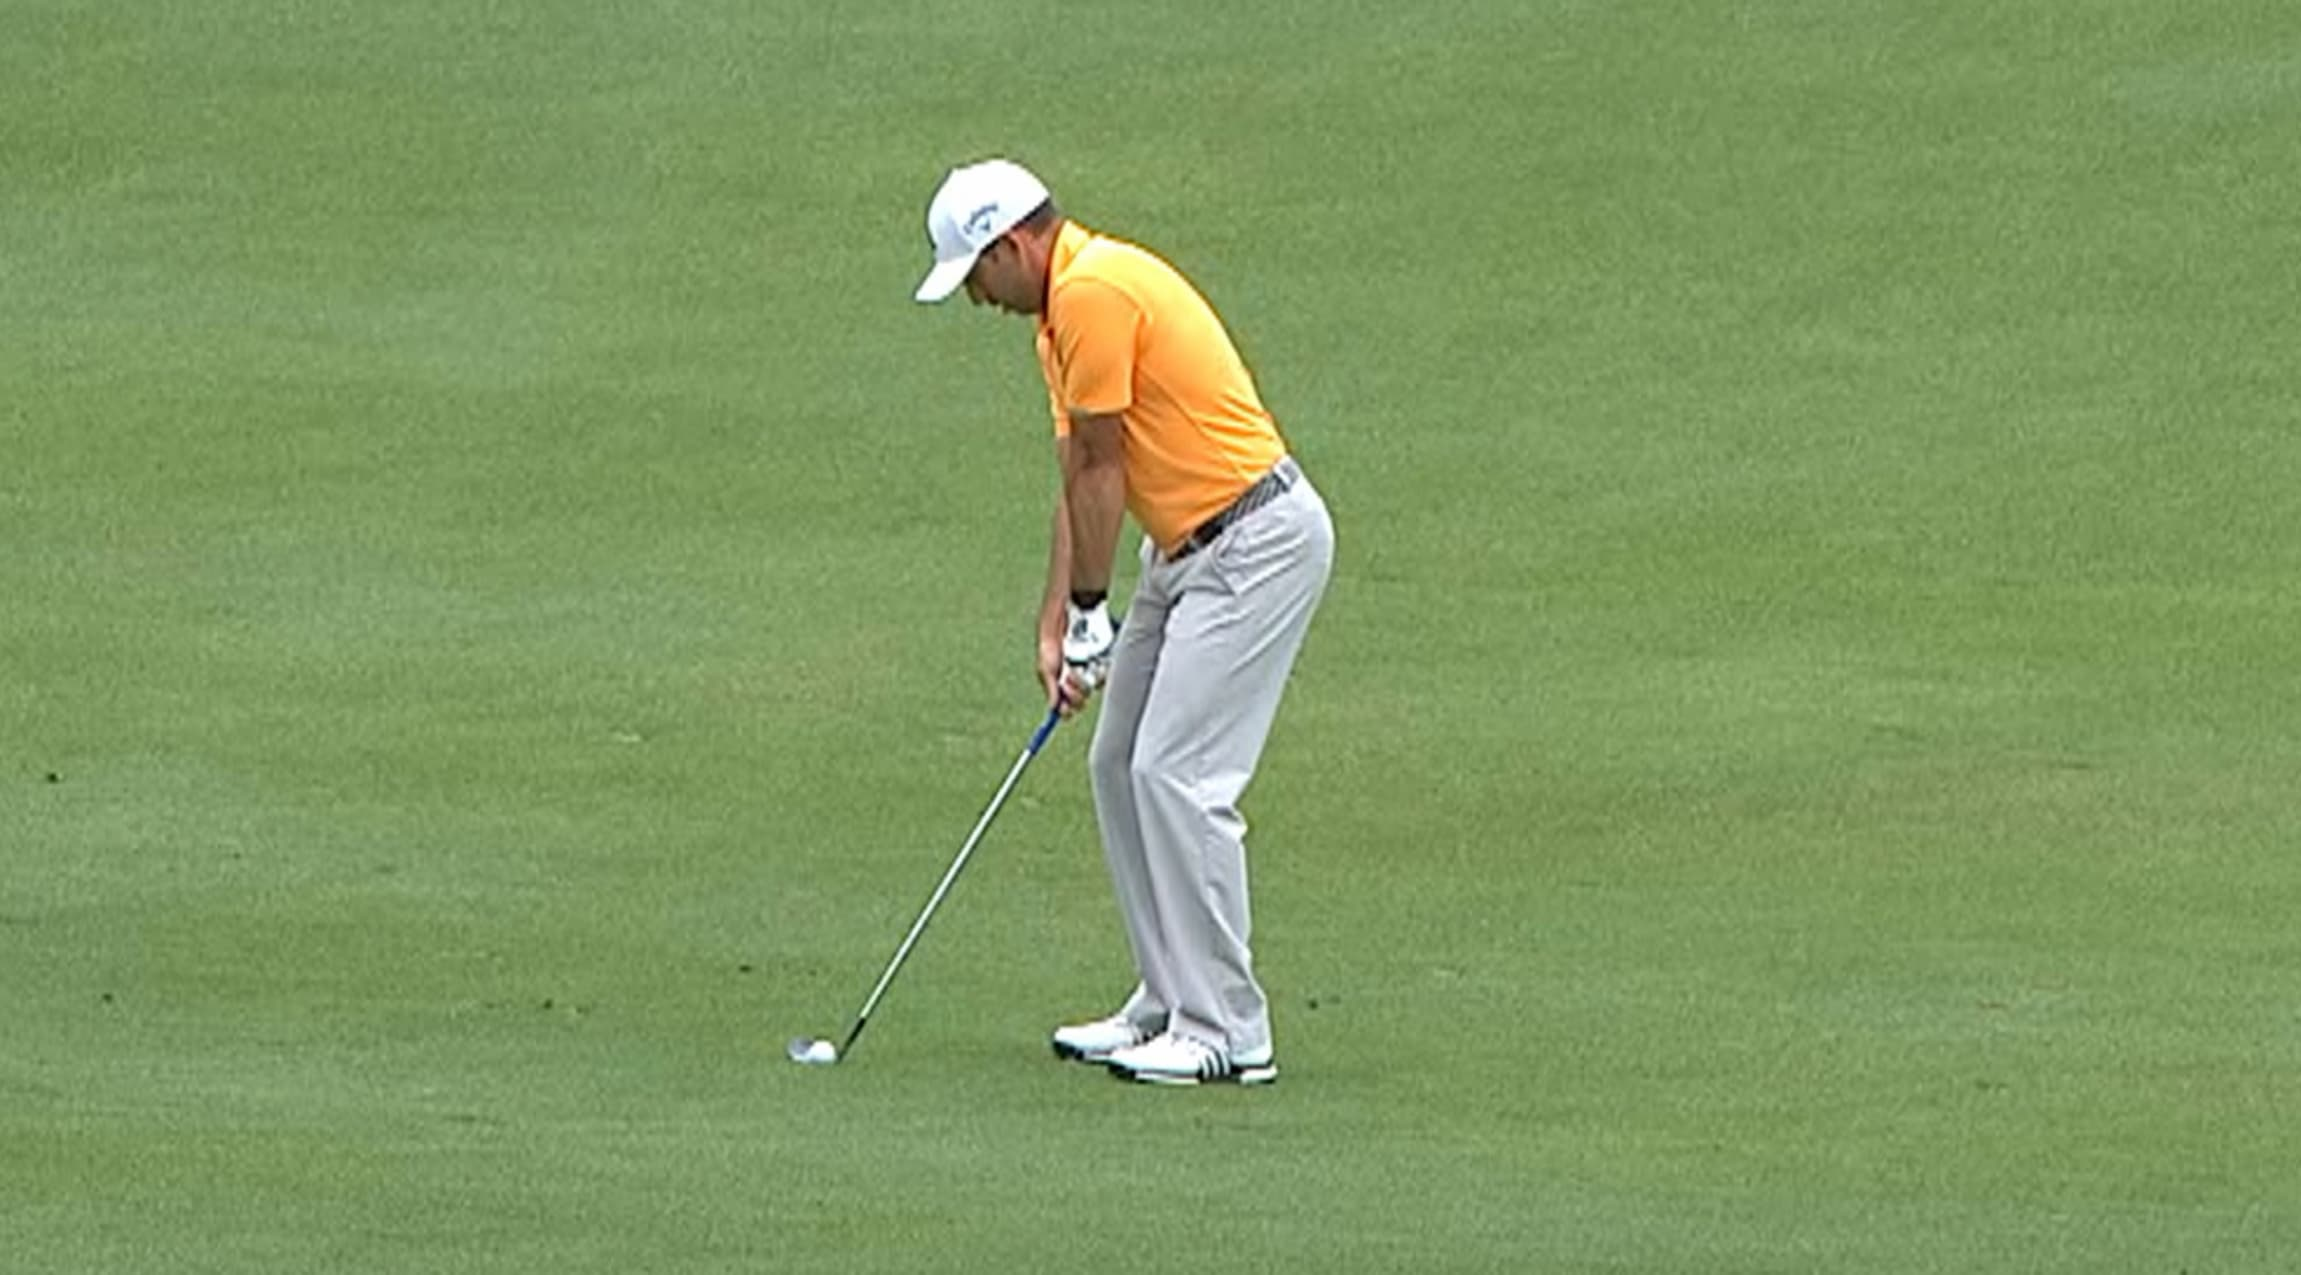 b5784dfd57689 Highlights Sergio Garcia s approach to 9 inches at Dell Match Play In the  third round of the 2018 World Golf Championships - Dell Technologies Match  Play